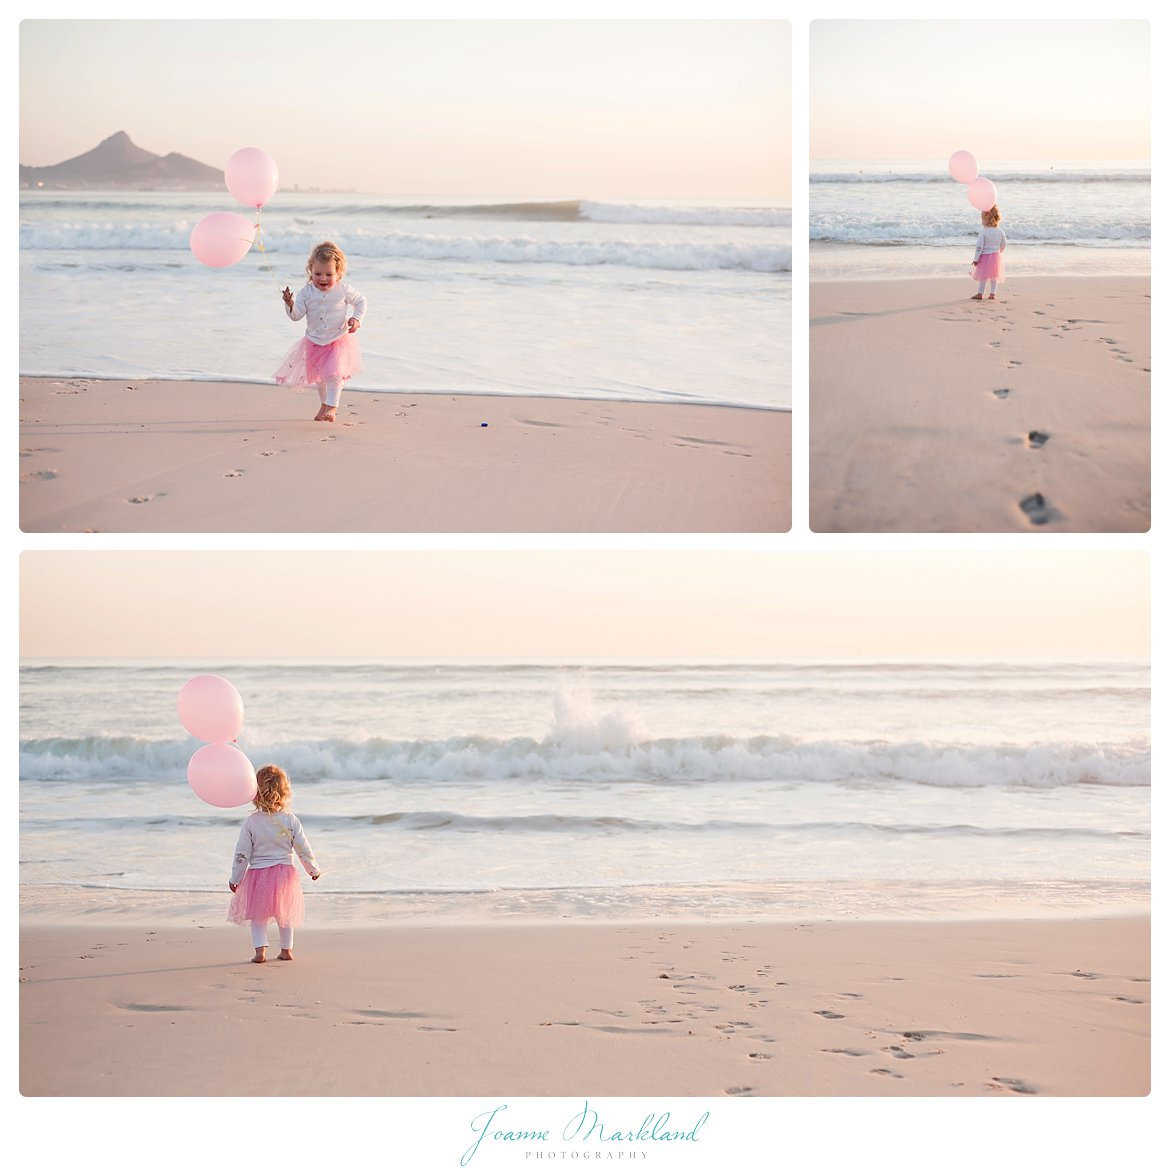 toddler-birthday-portraits-family-photographer-joanne-markland-photography-cape-town-012